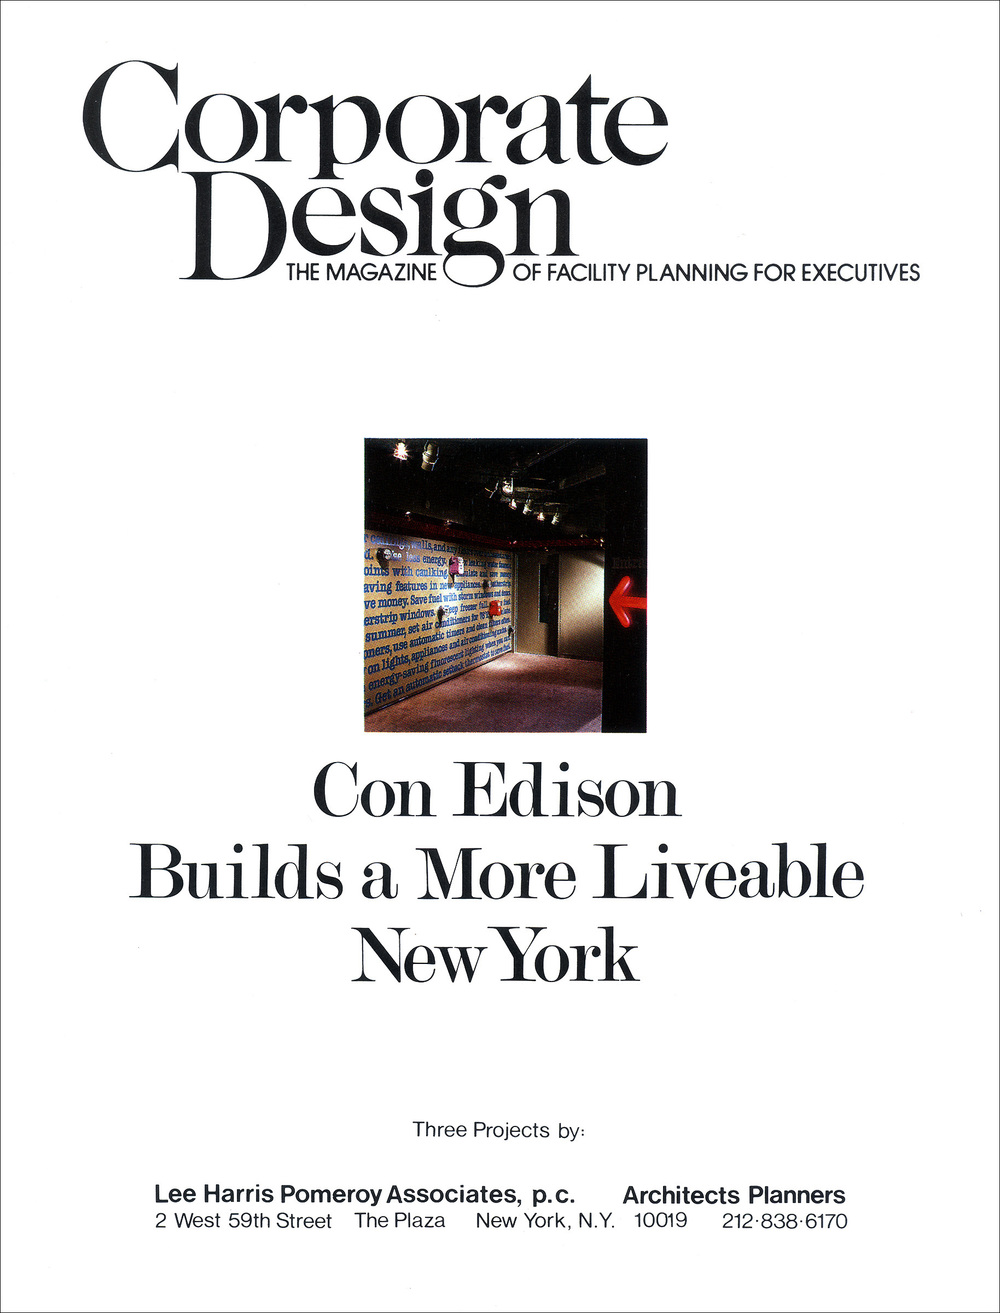 Con Edison Builds a More Liveable New York